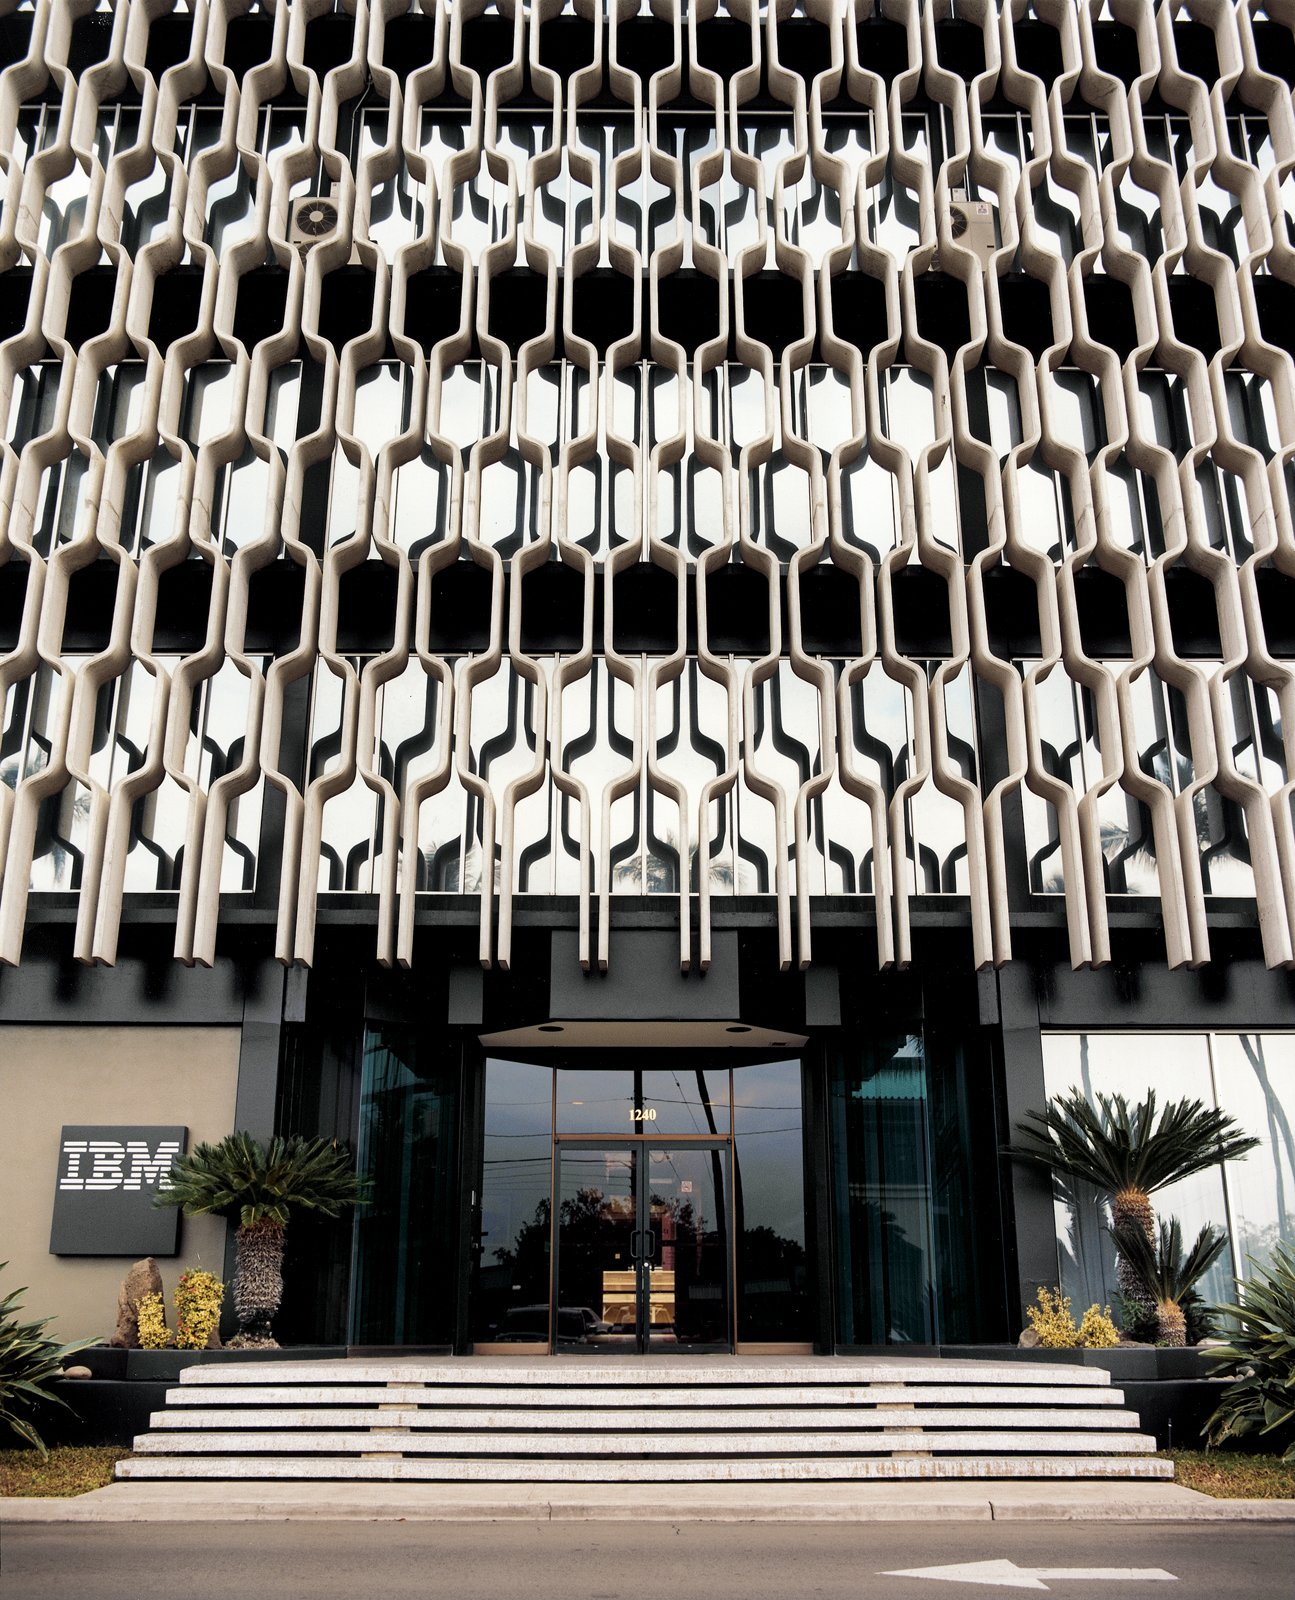 Honolulu IBM BuildingVladimir Ossipoff's iconic IBM Building, with its graphic concrete sunshade cladding, is sited in Honolulu, Hawaii.  Reasons to Love Design Made in America by Dwell from Honolulu, Hawaii